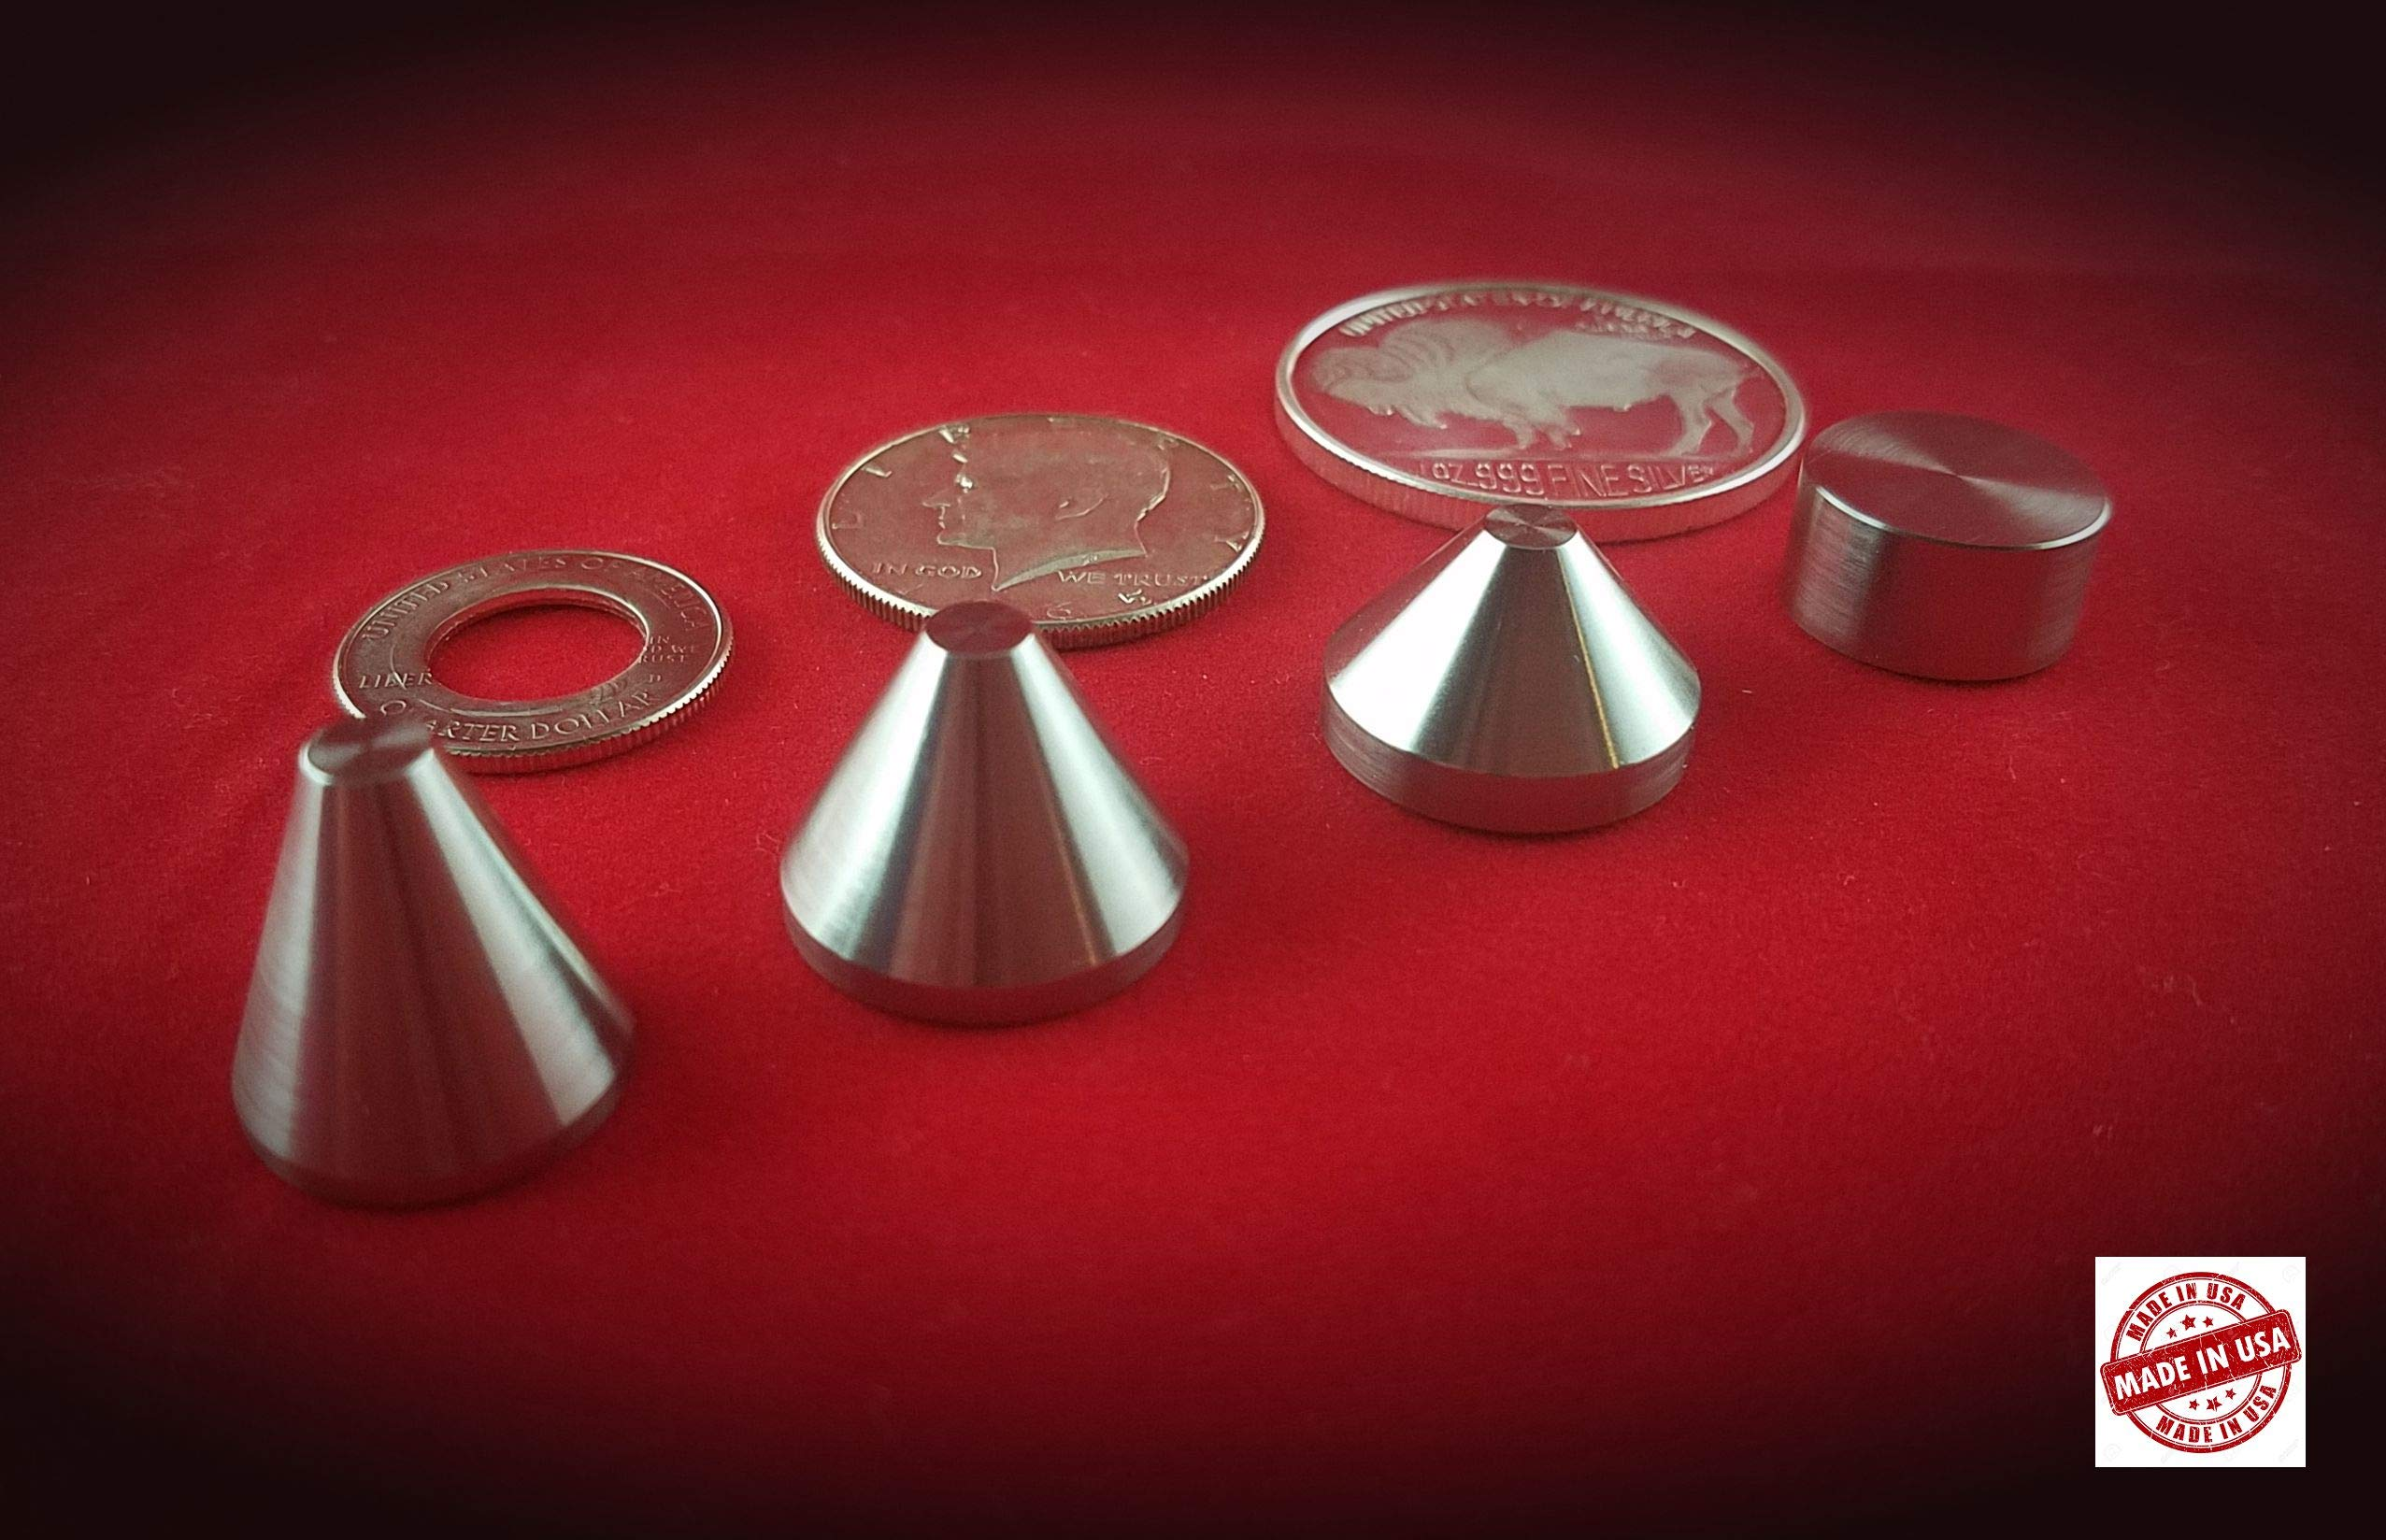 3 Stainless Steel Stabilizing Folding Cones(20,30,40 Degrees) Plus 1 Spacer by JMM Tech Inc